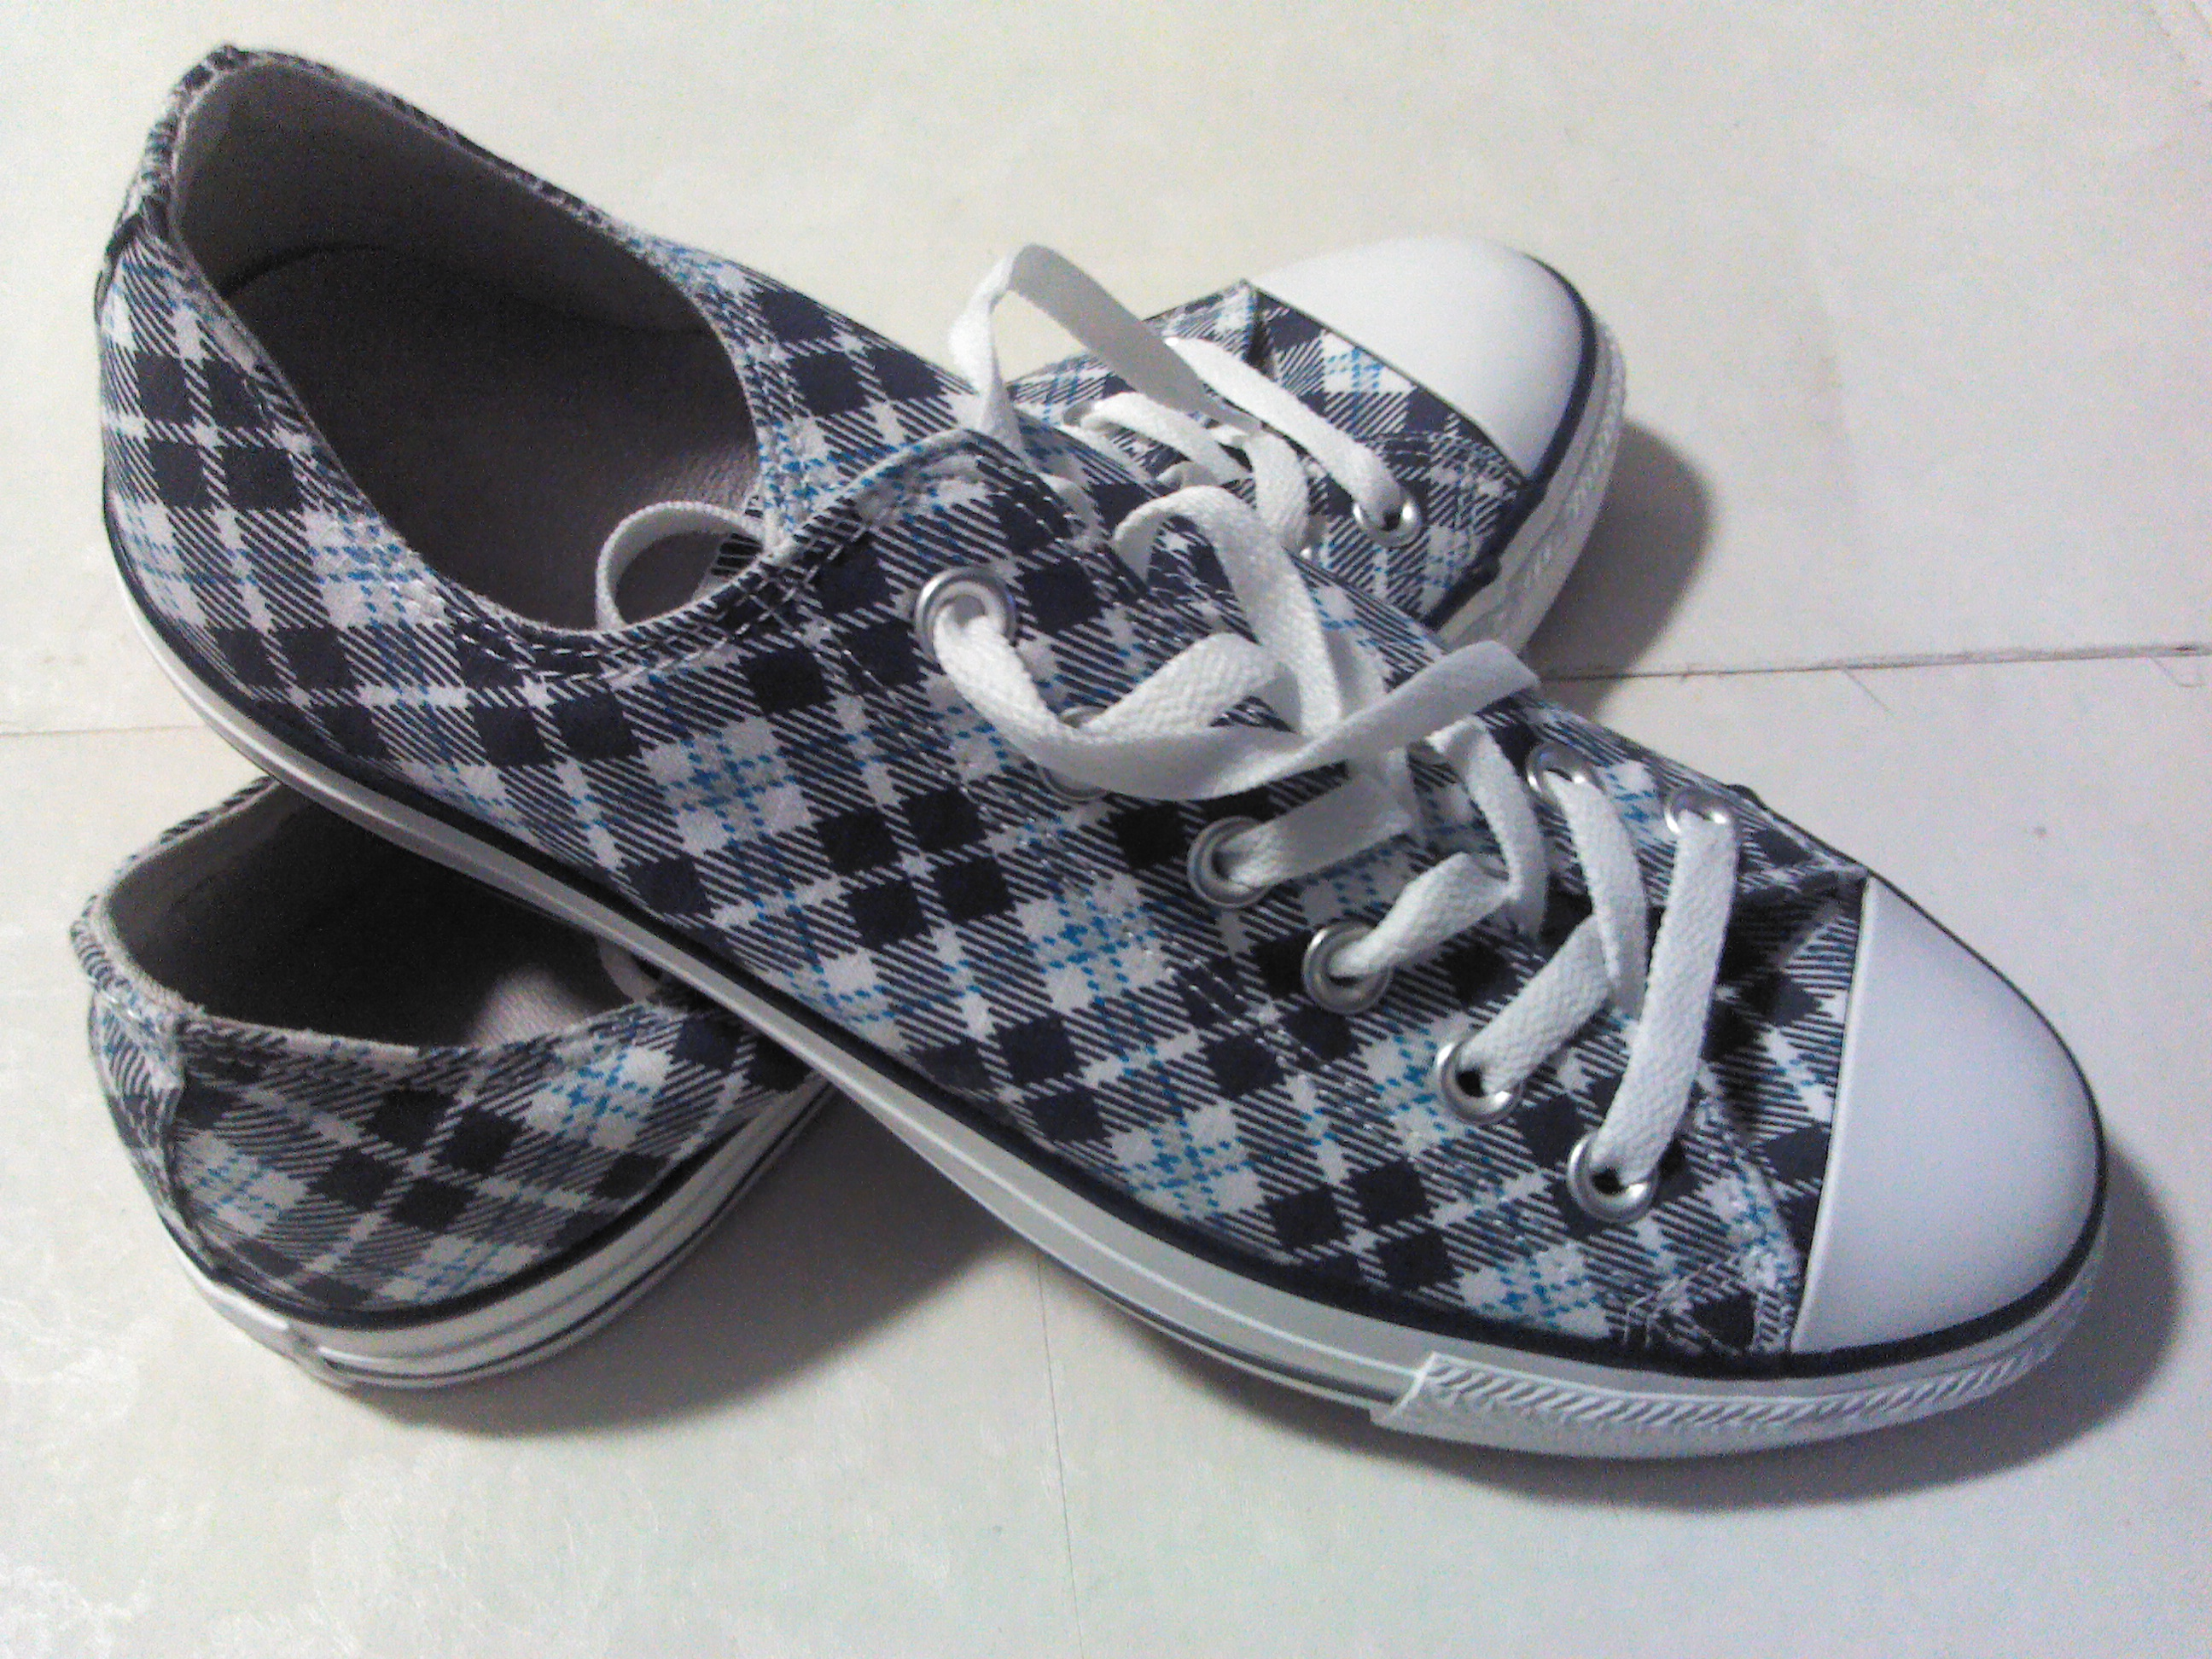 Blue/Teal Argyle Chucks